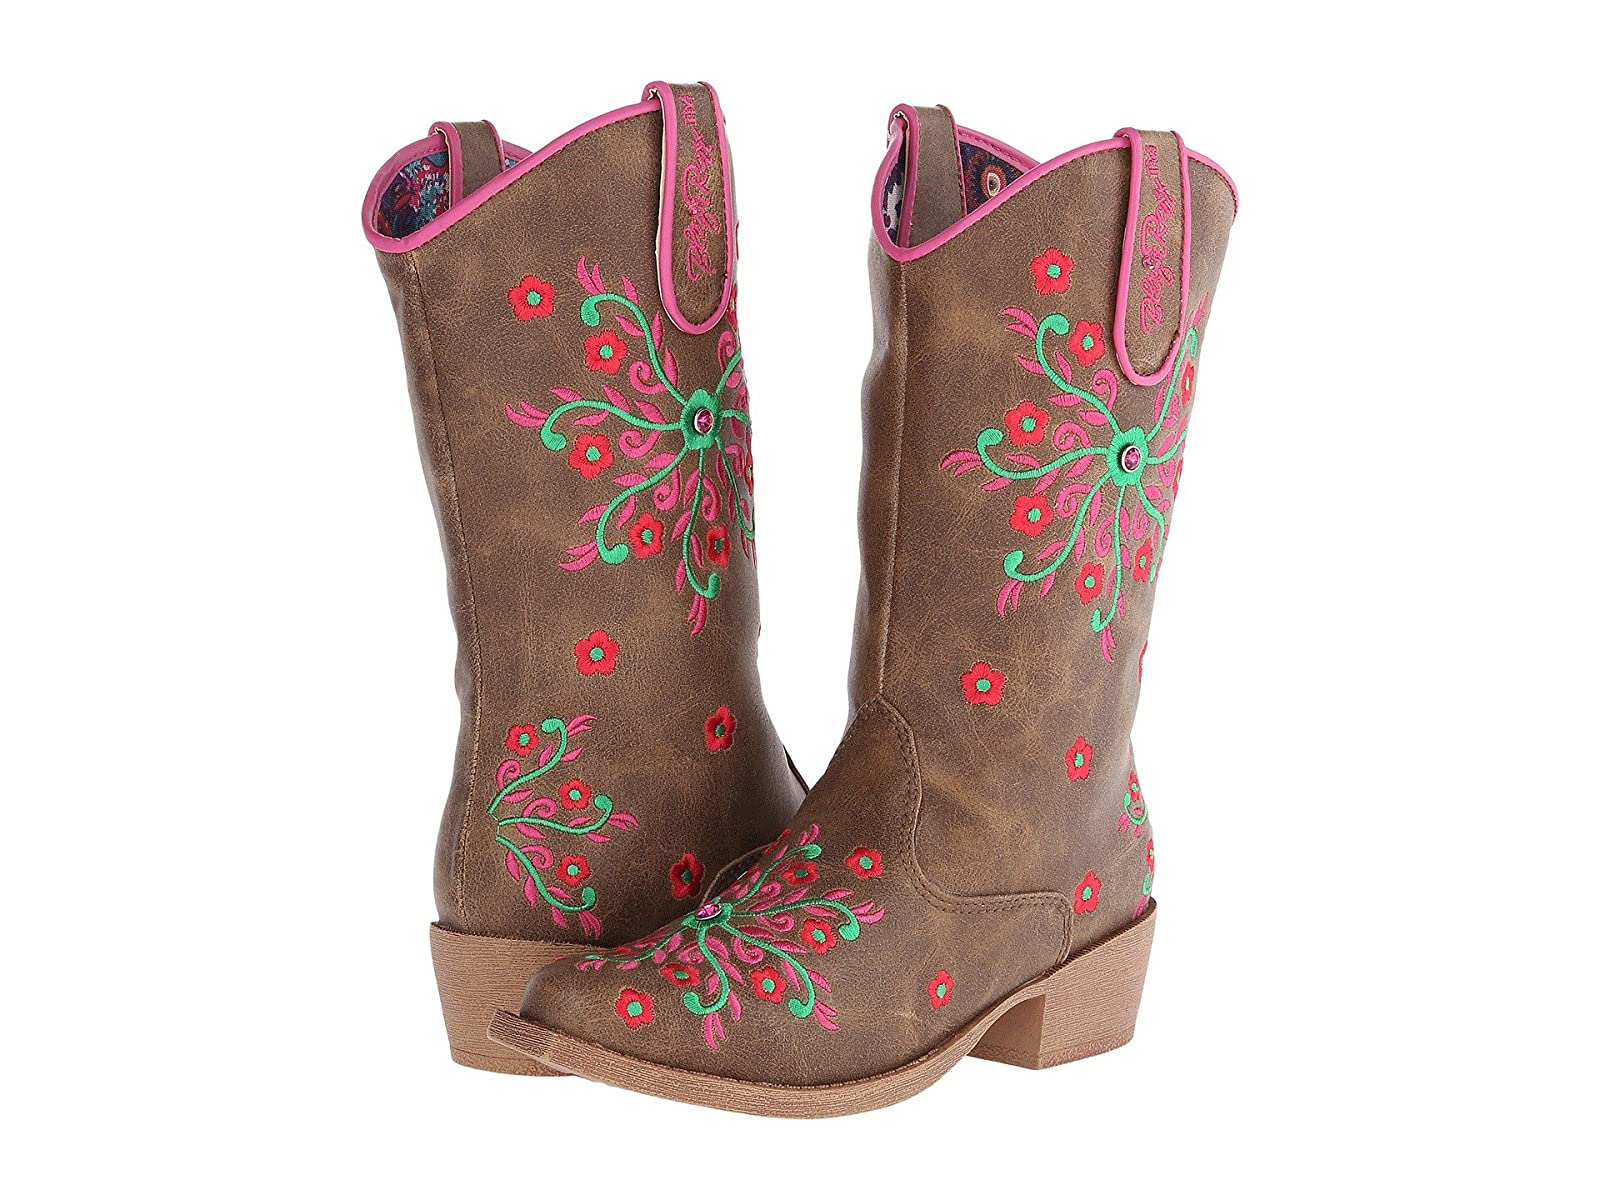 M&F Western Kids Savvy (Little Kid)Affordable and distinctive shoes